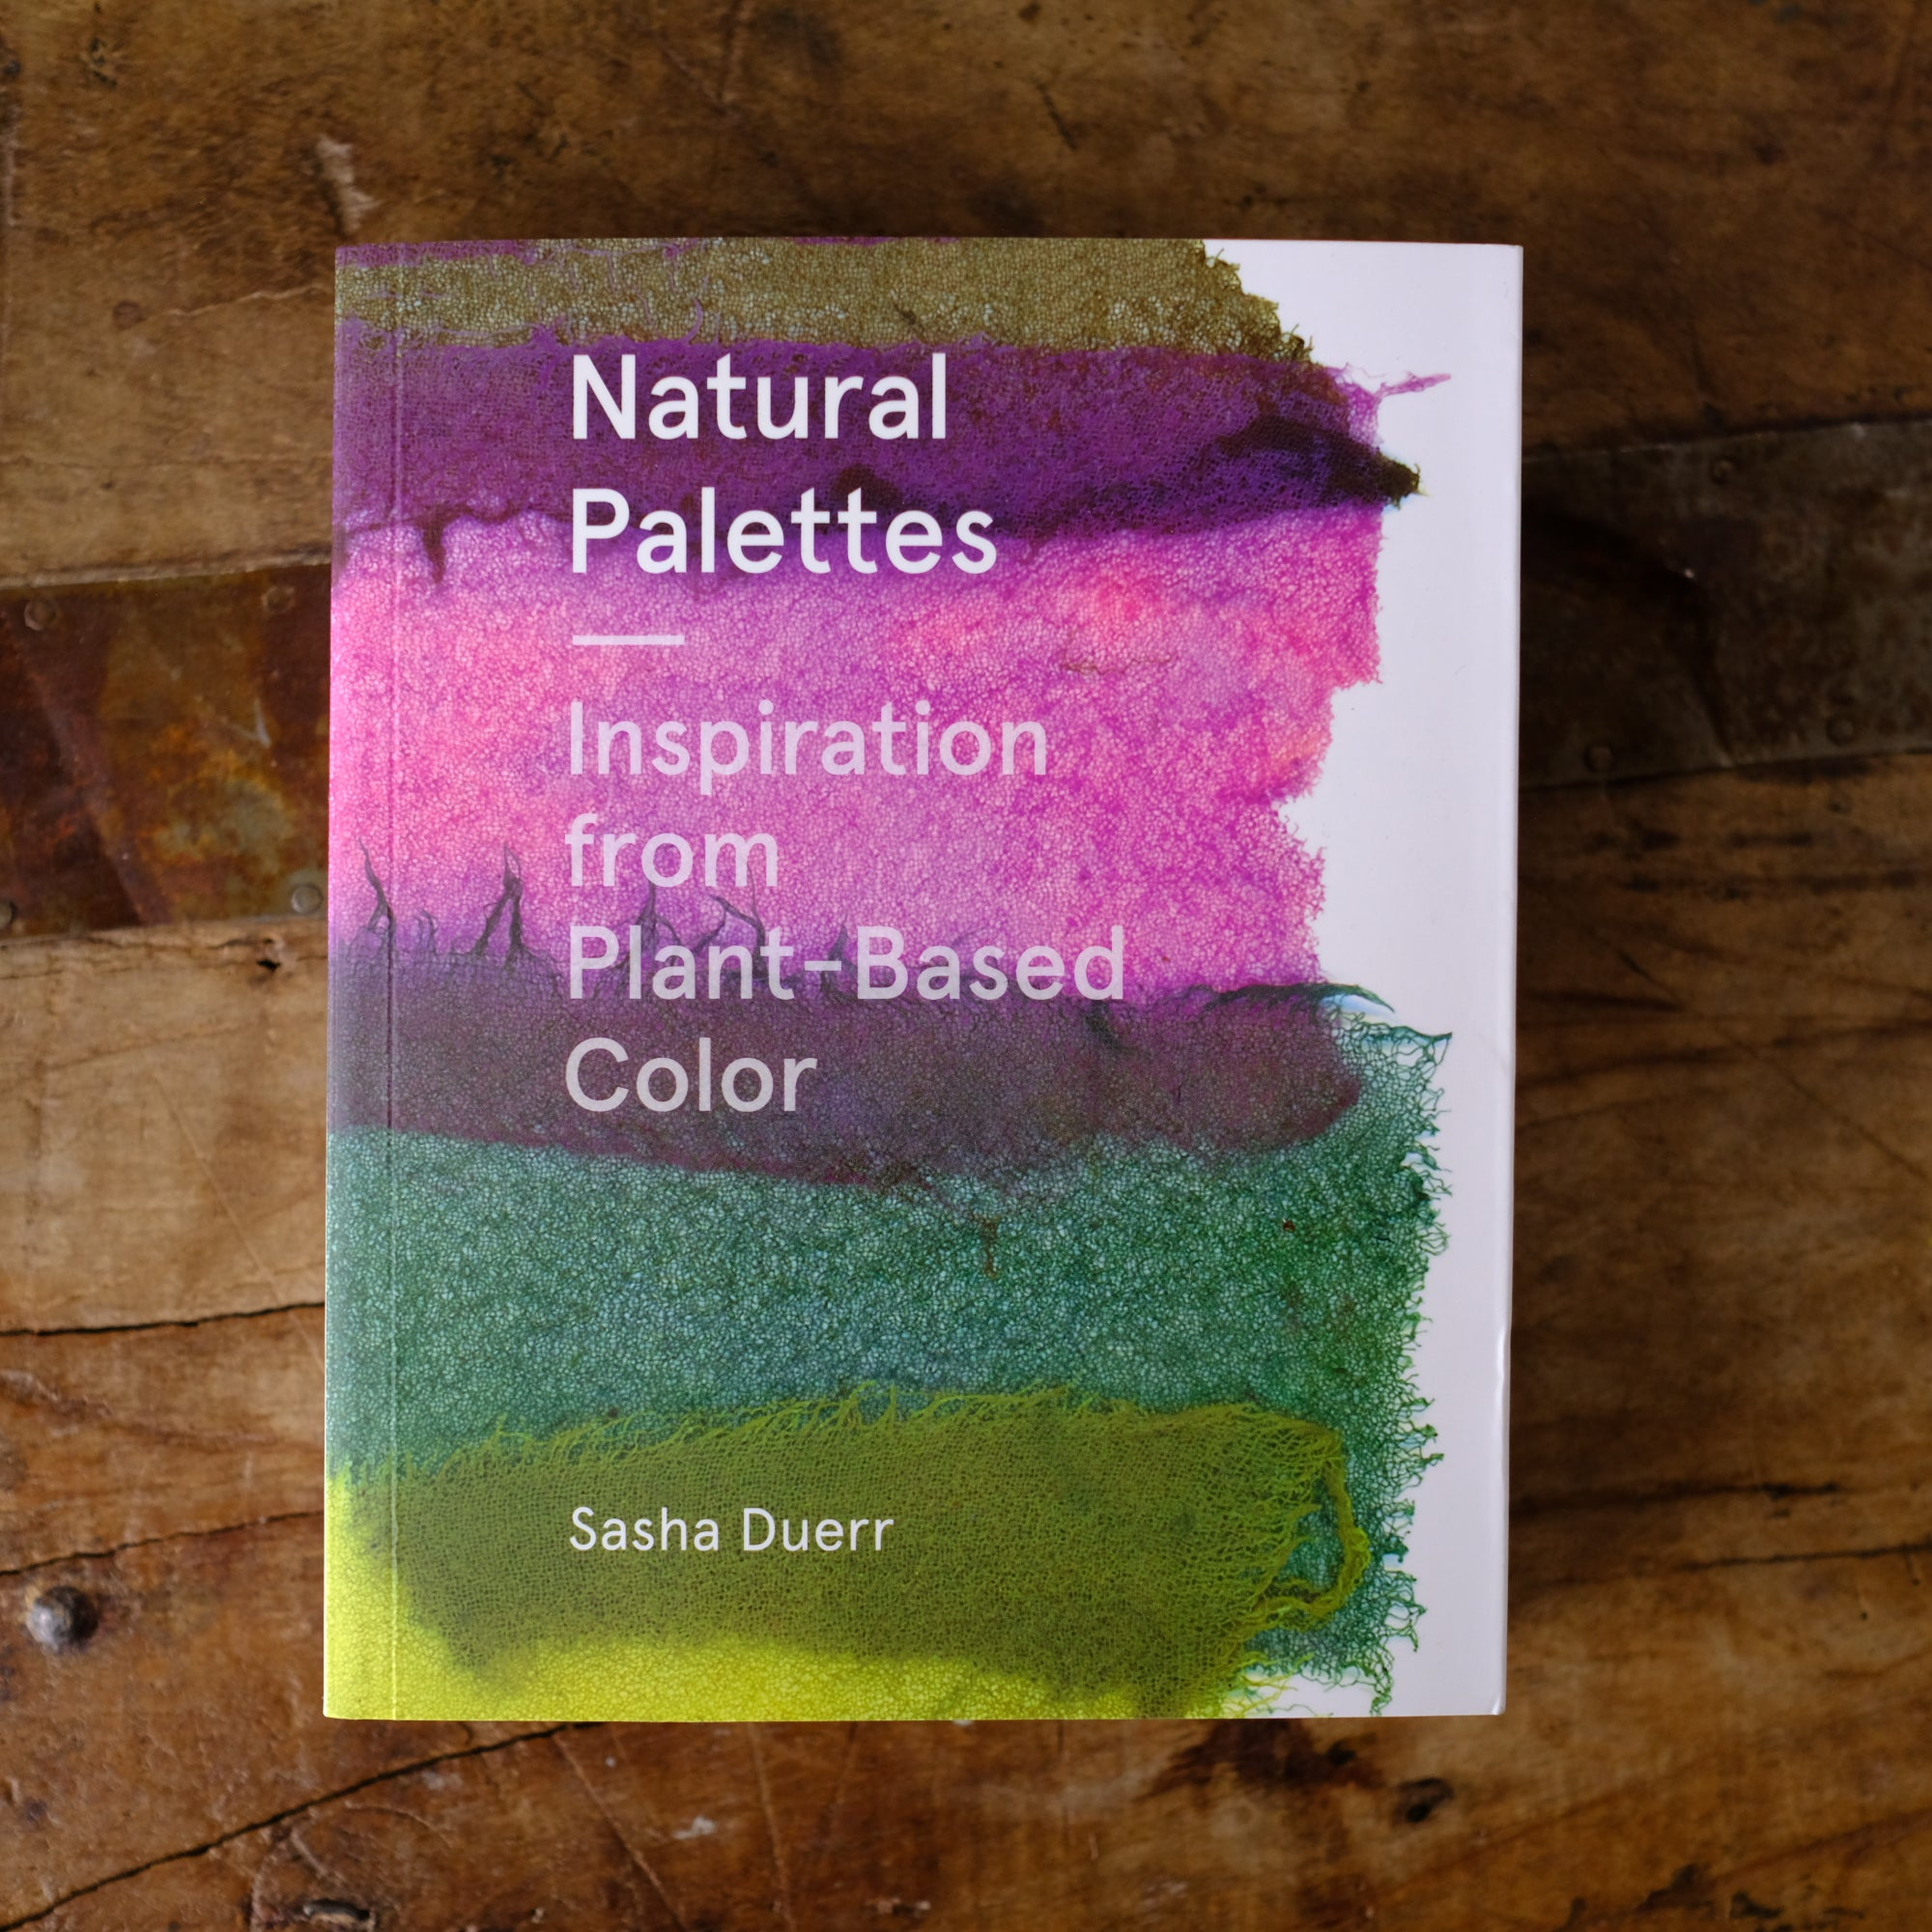 Natural Palettes: Inspiration from Plant-Based Color Systems by Sasha Duerr - New! SOLD OUT